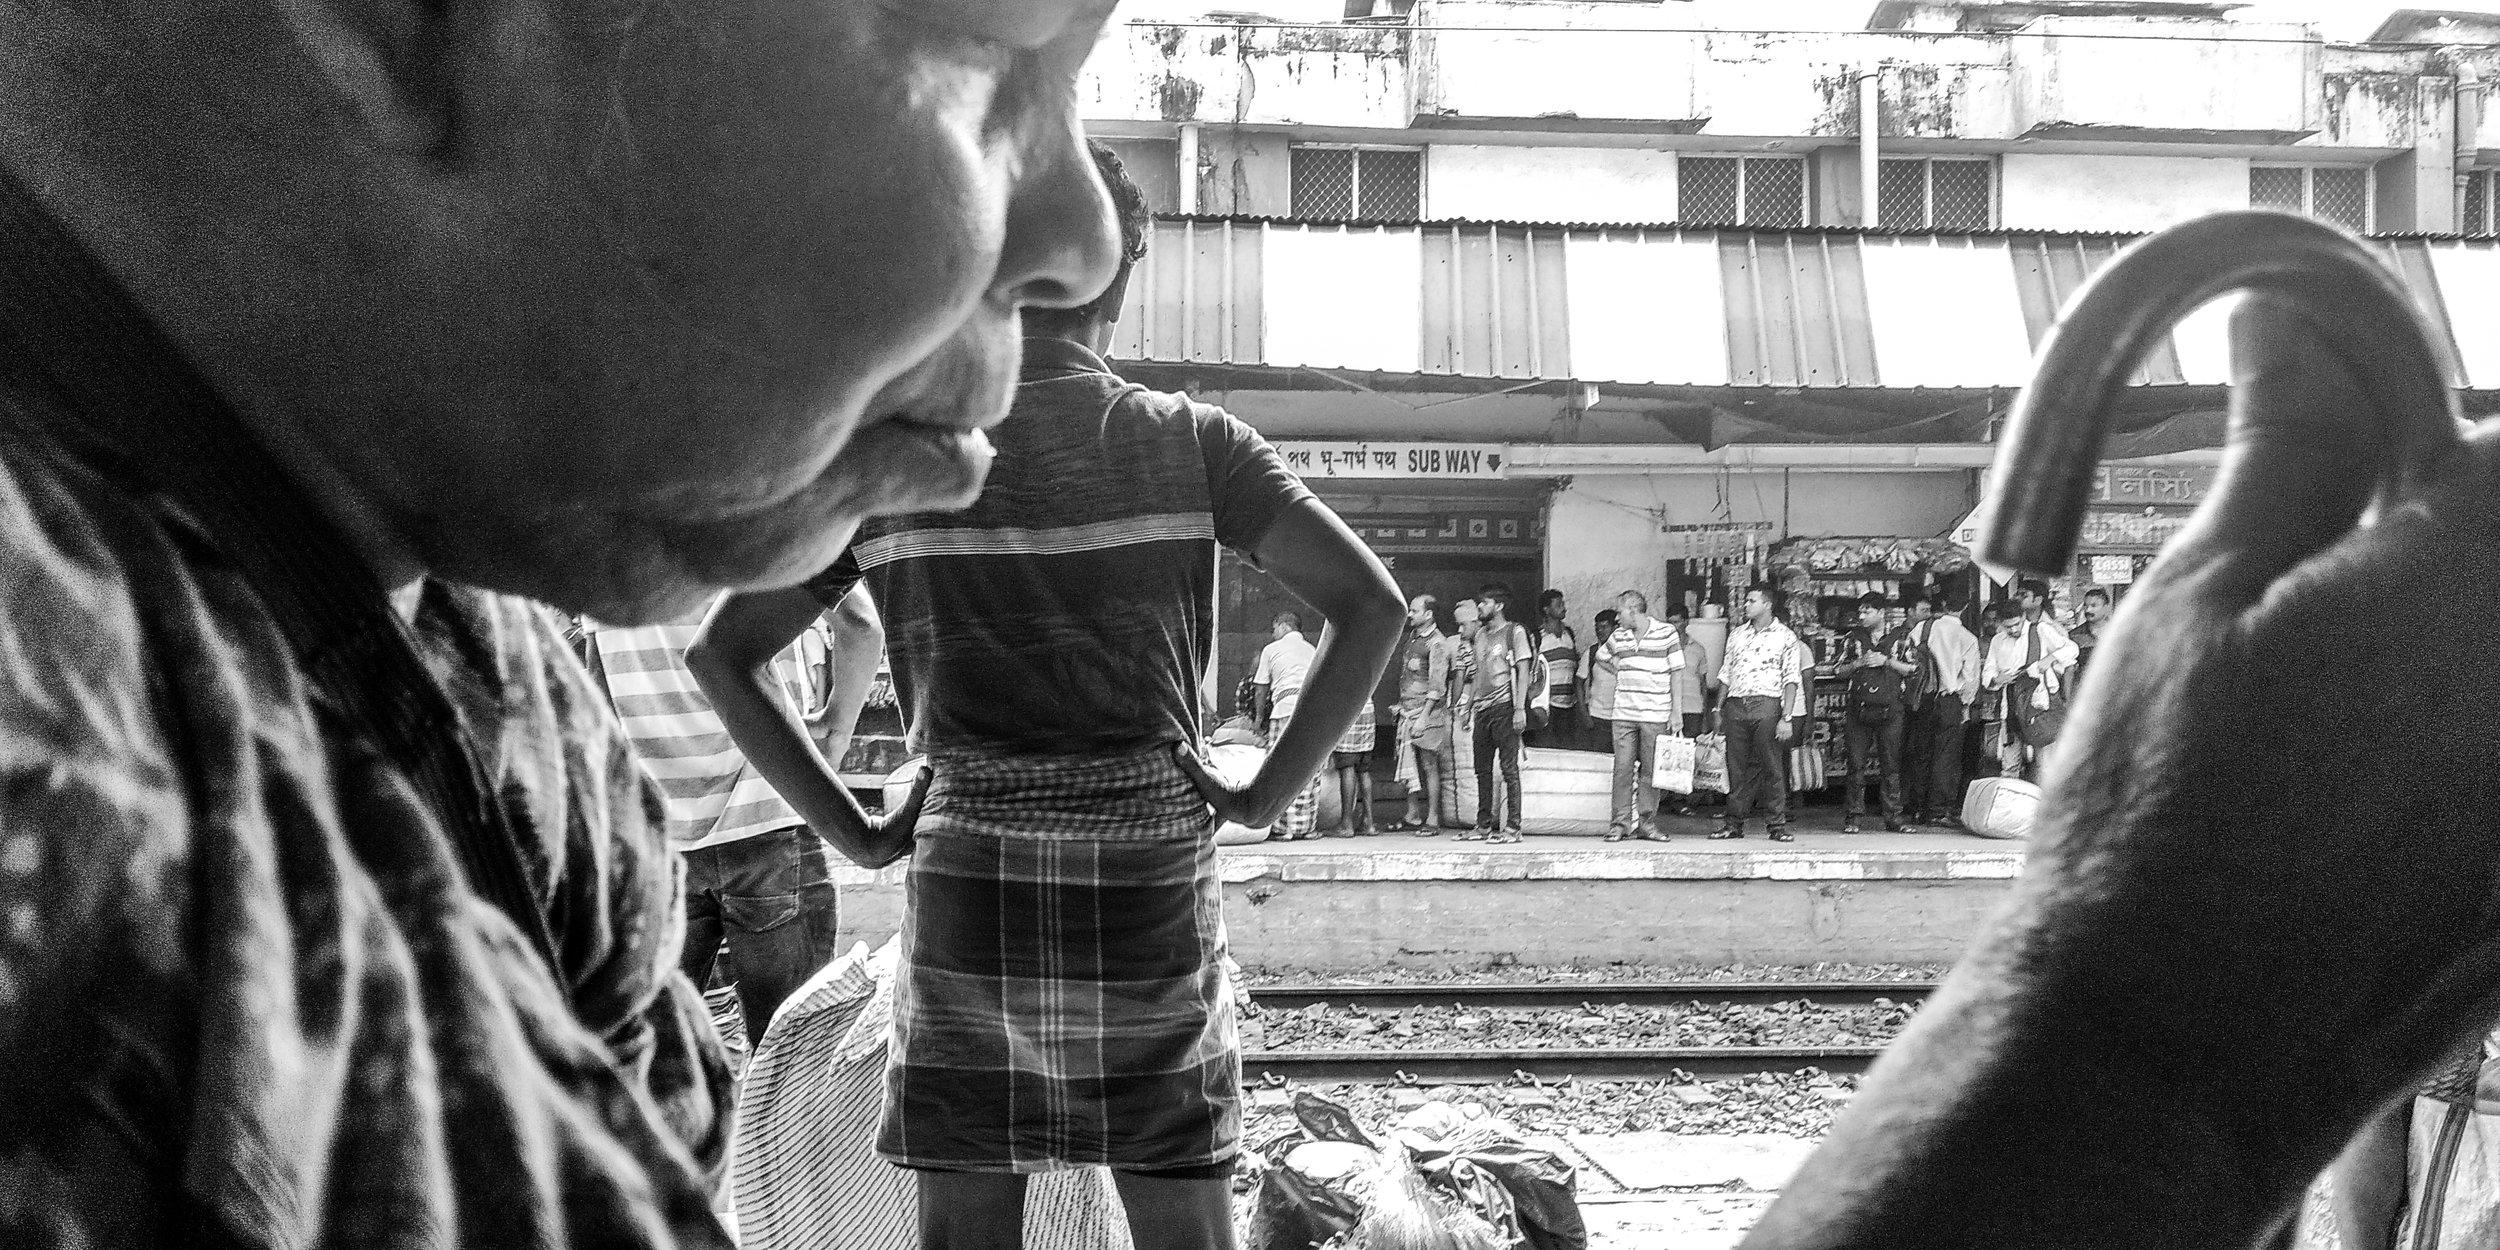 A blind old woman is waiting for her train. Date: 13 June, 2019  Location: Dum Dum Jn, Dum Dum Station Rd, South Sinthee, Biswanath Colony, Sinthee, Kolkata, West Bengal 700030, India